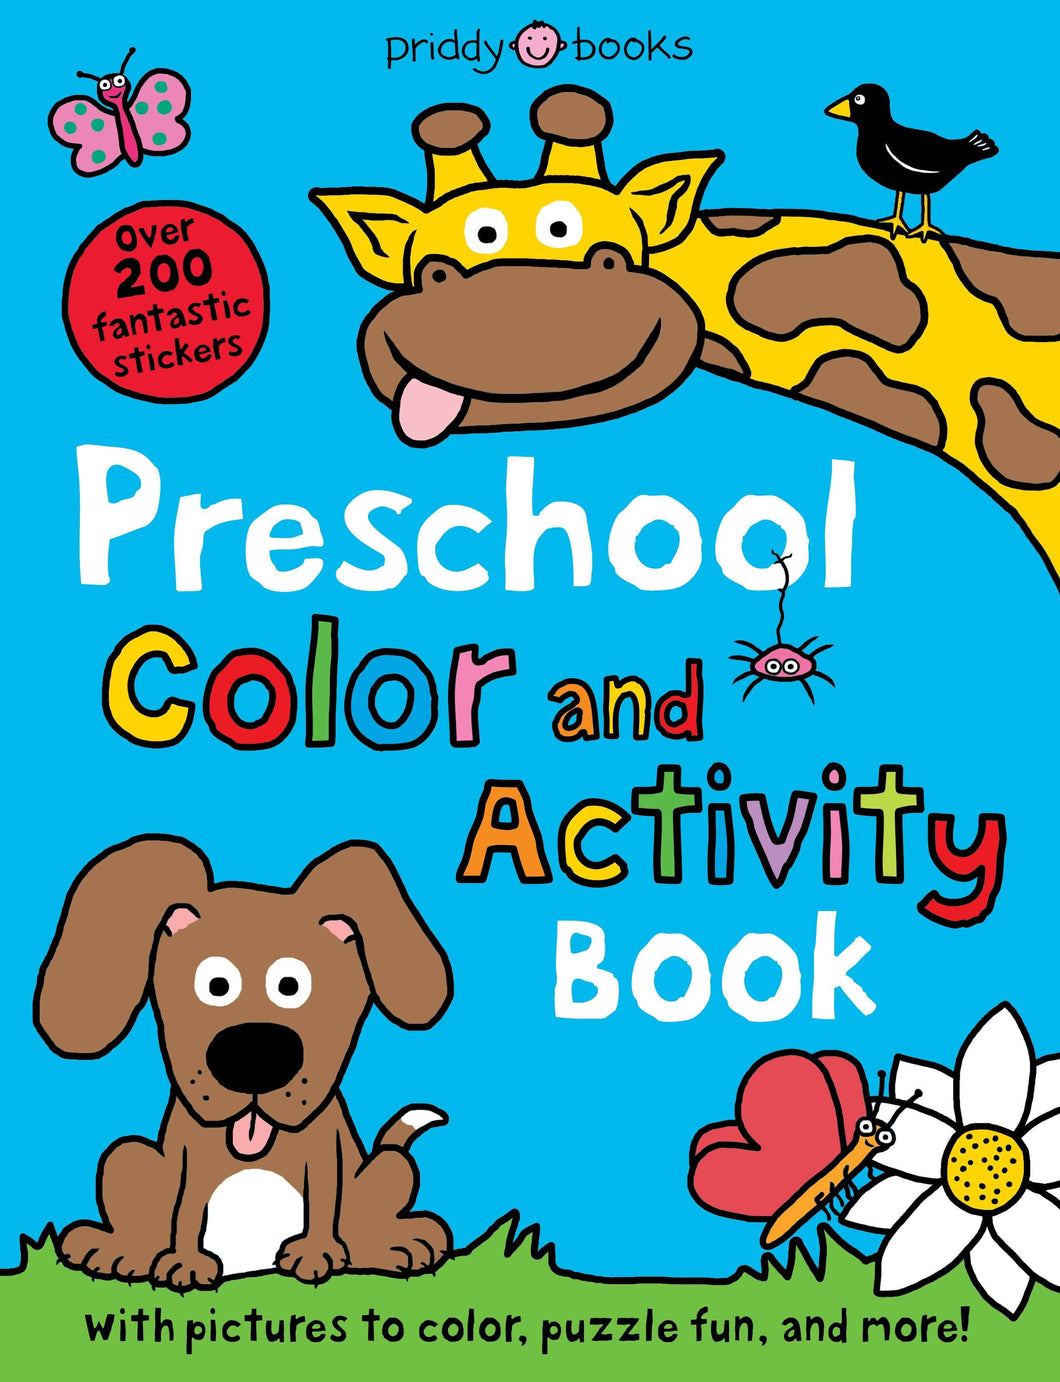 Priddy Books Preschool Color and Activity Book